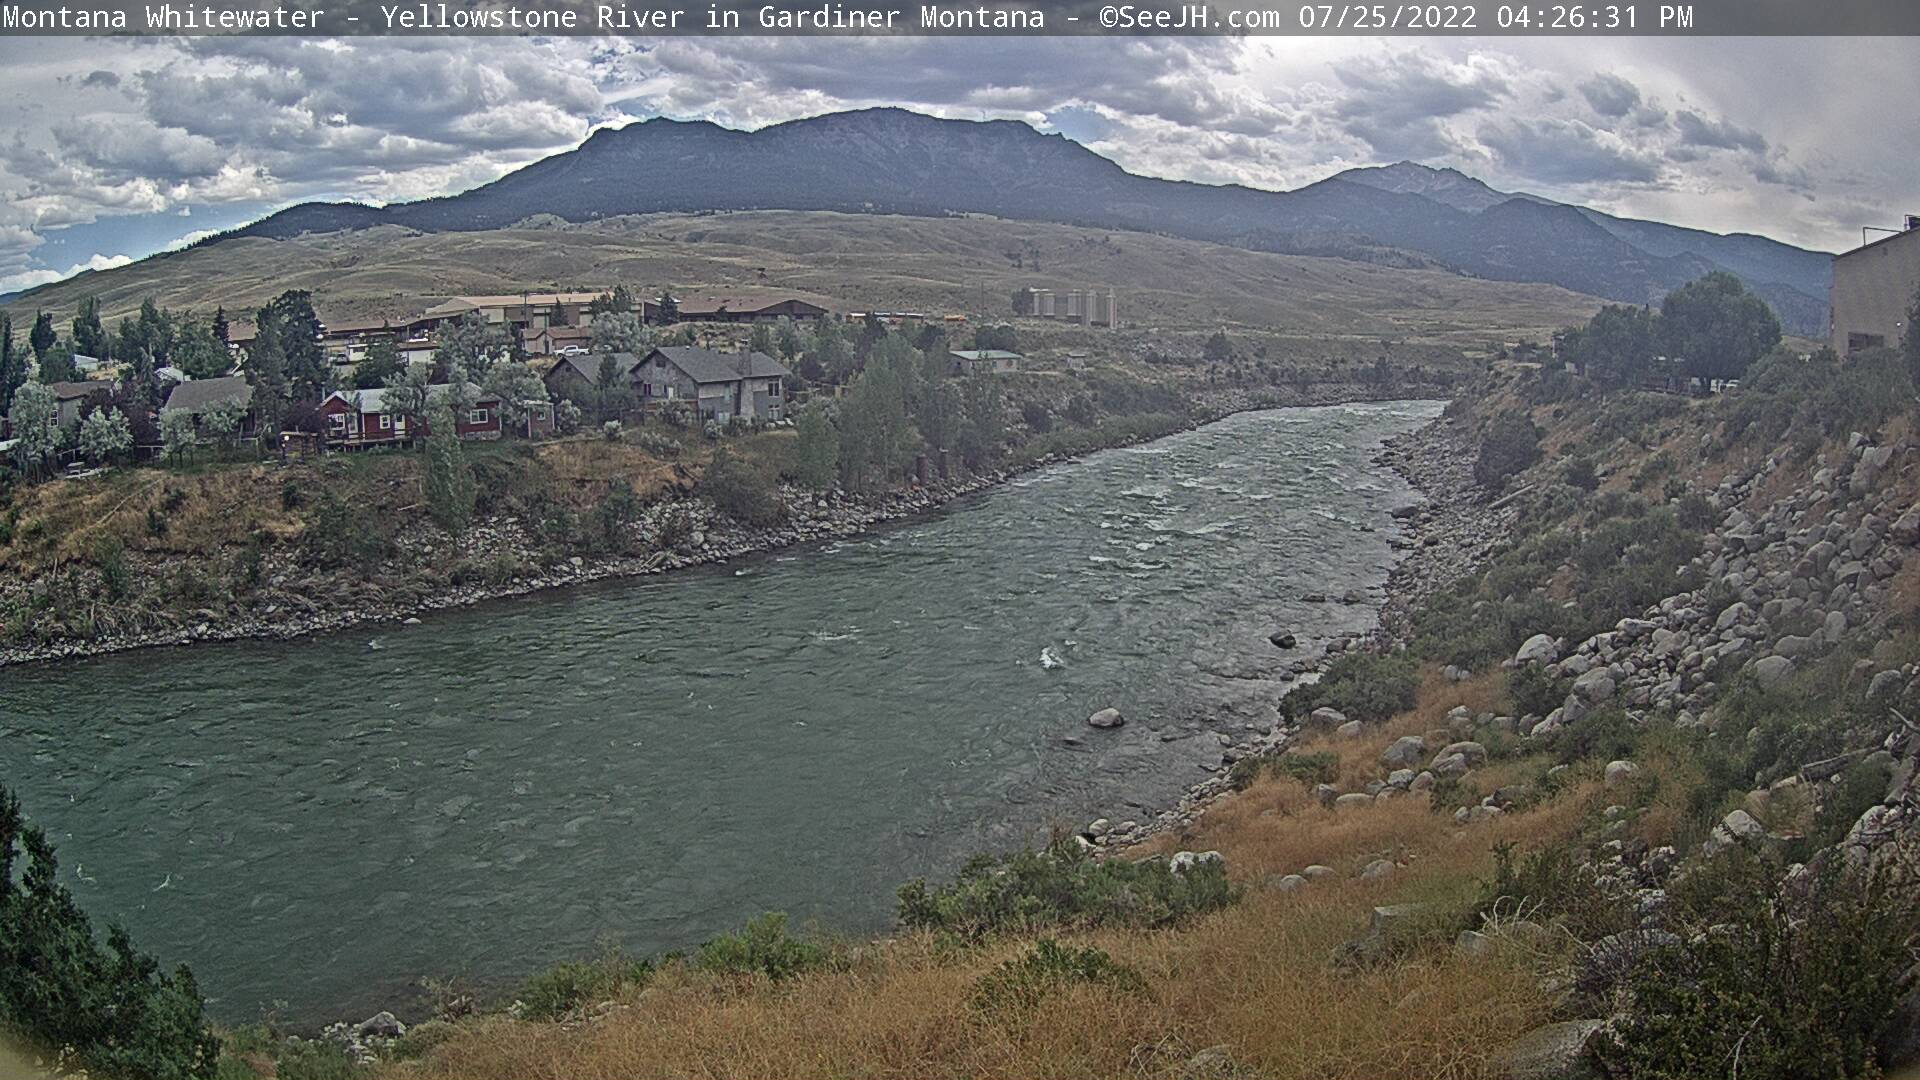 Yellowstone River at Gardiner Webcam - Gardiner, MT